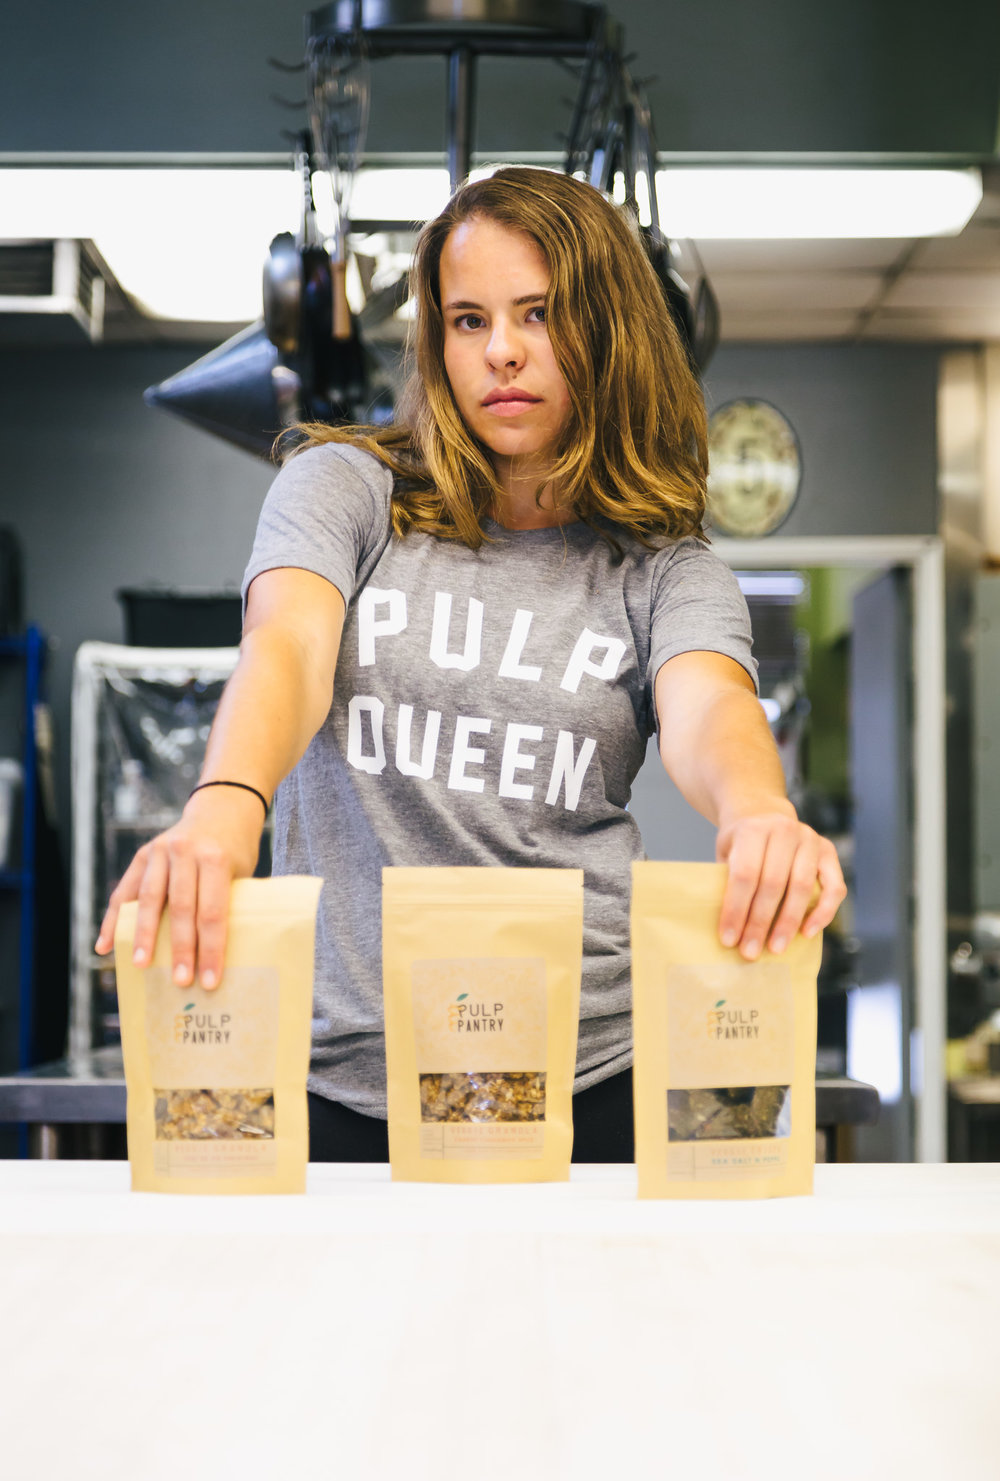 Kaitlin Mogentale, Pulp Pantry. Photo by: Josh Vertucci